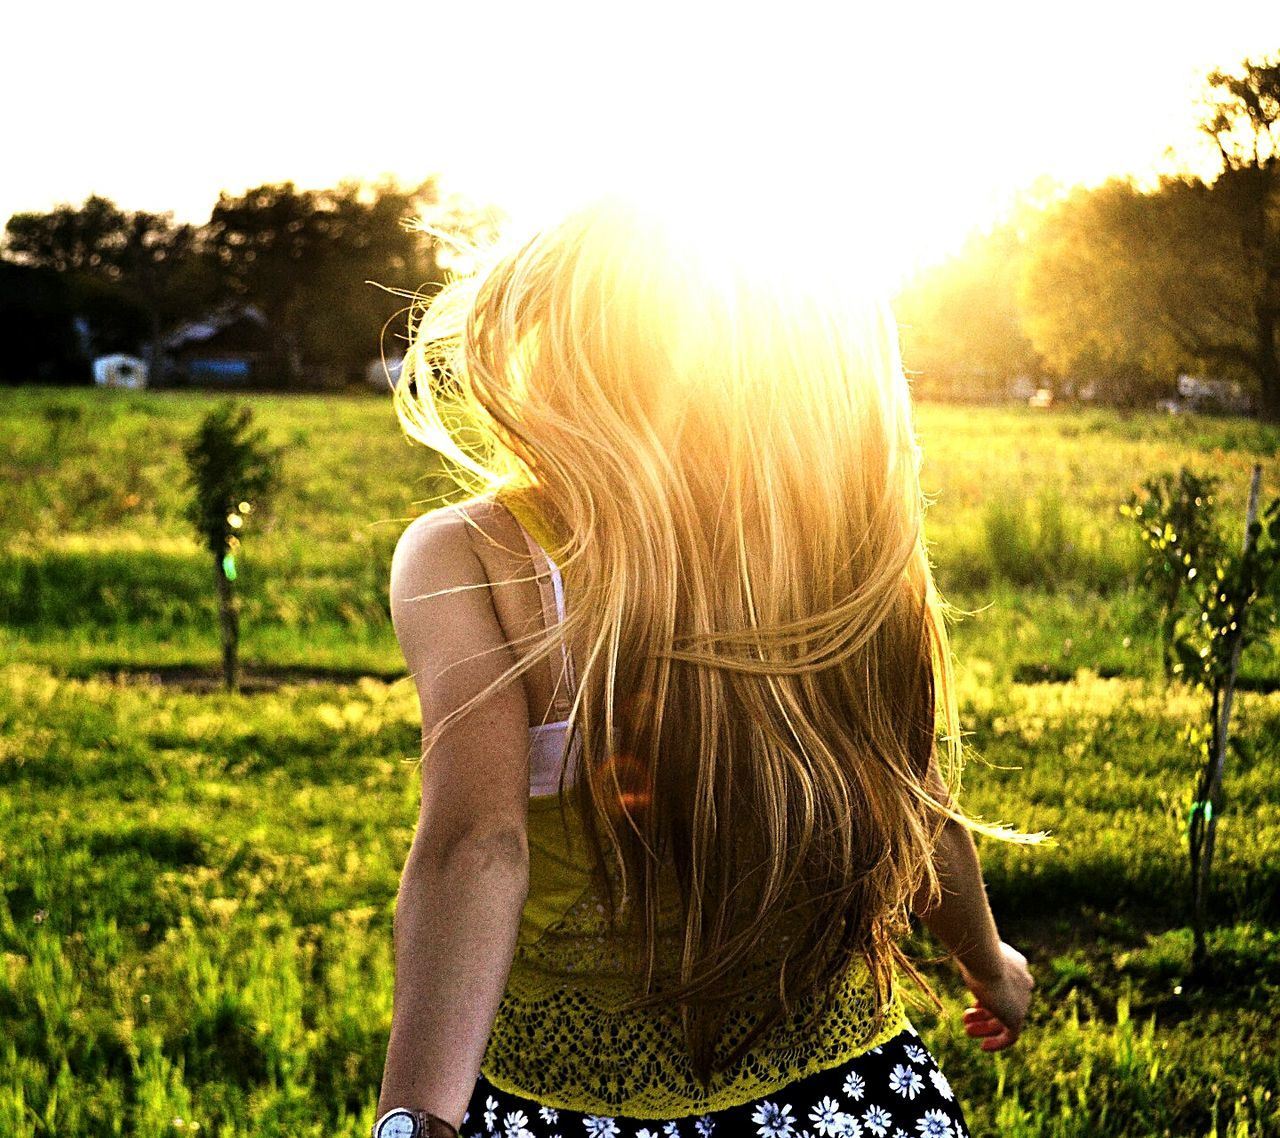 blond hair, grass, long hair, one person, rear view, field, focus on foreground, nature, outdoors, leisure activity, sunlight, real people, young adult, day, sunset, tree, young women, one woman only, people, sky, adult